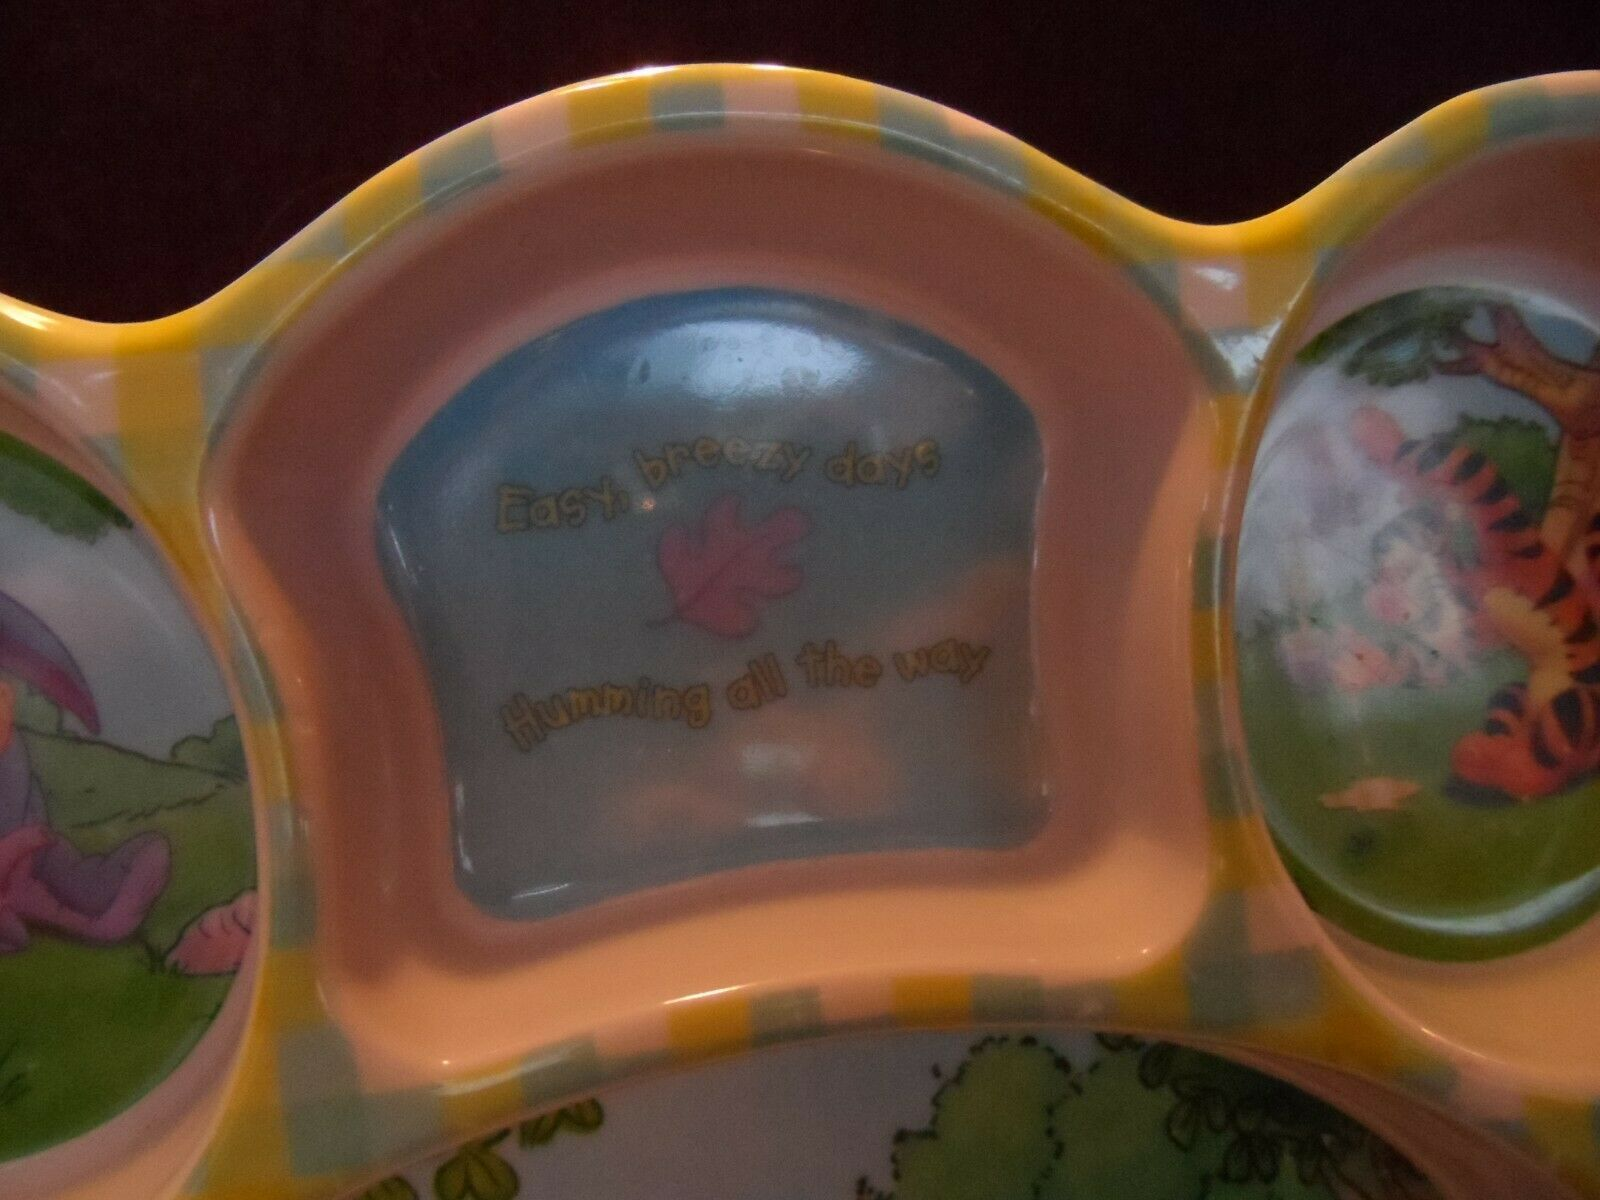 Disney Winnie the Pooh Character Plastic Divided Kids Plate image 3